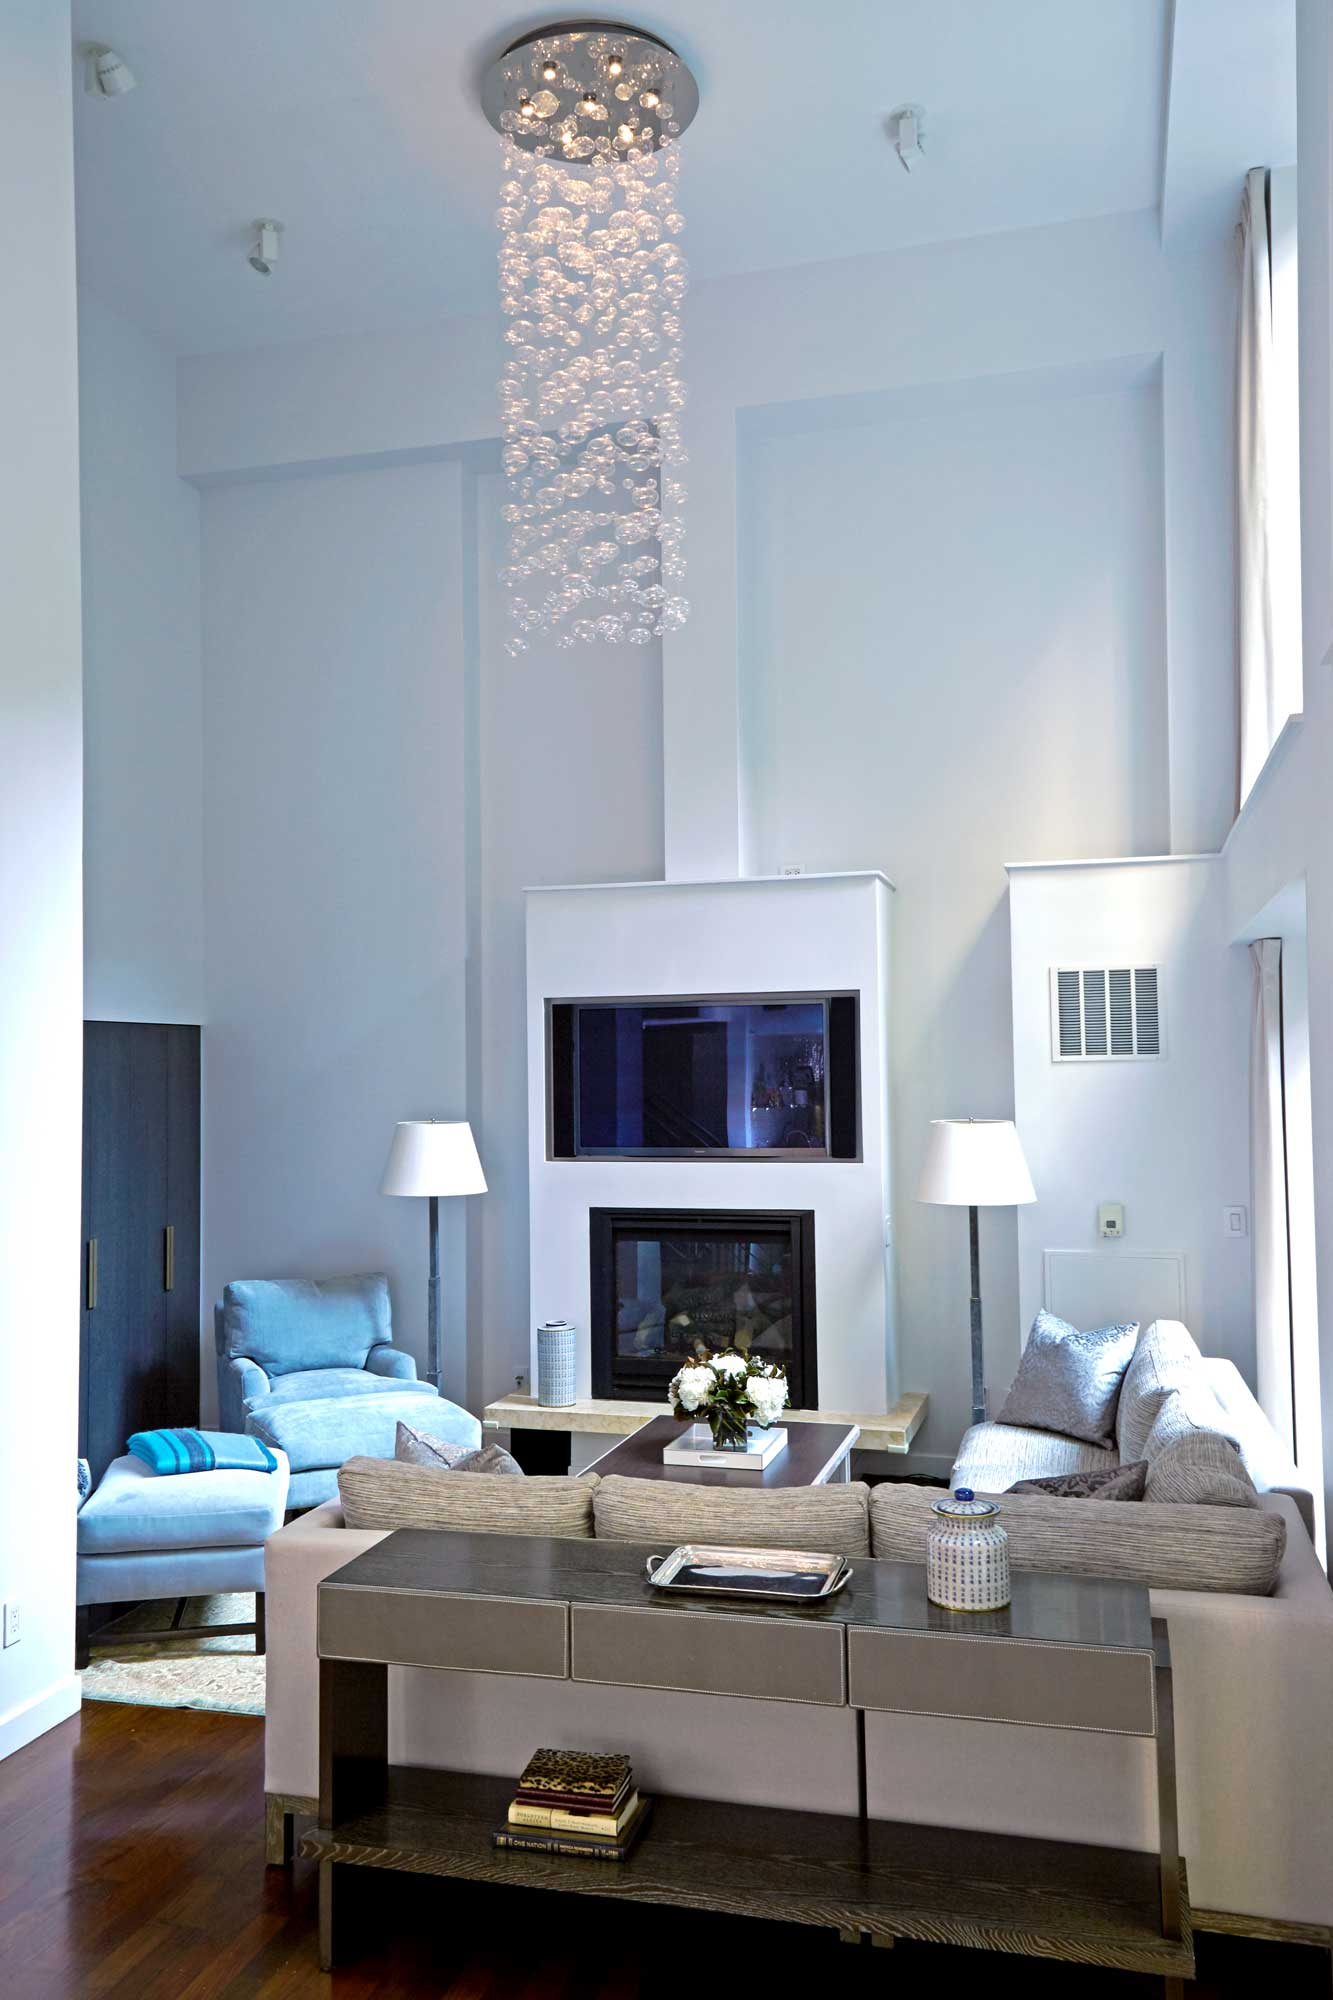 brooke moorhead design west village family comfort living room